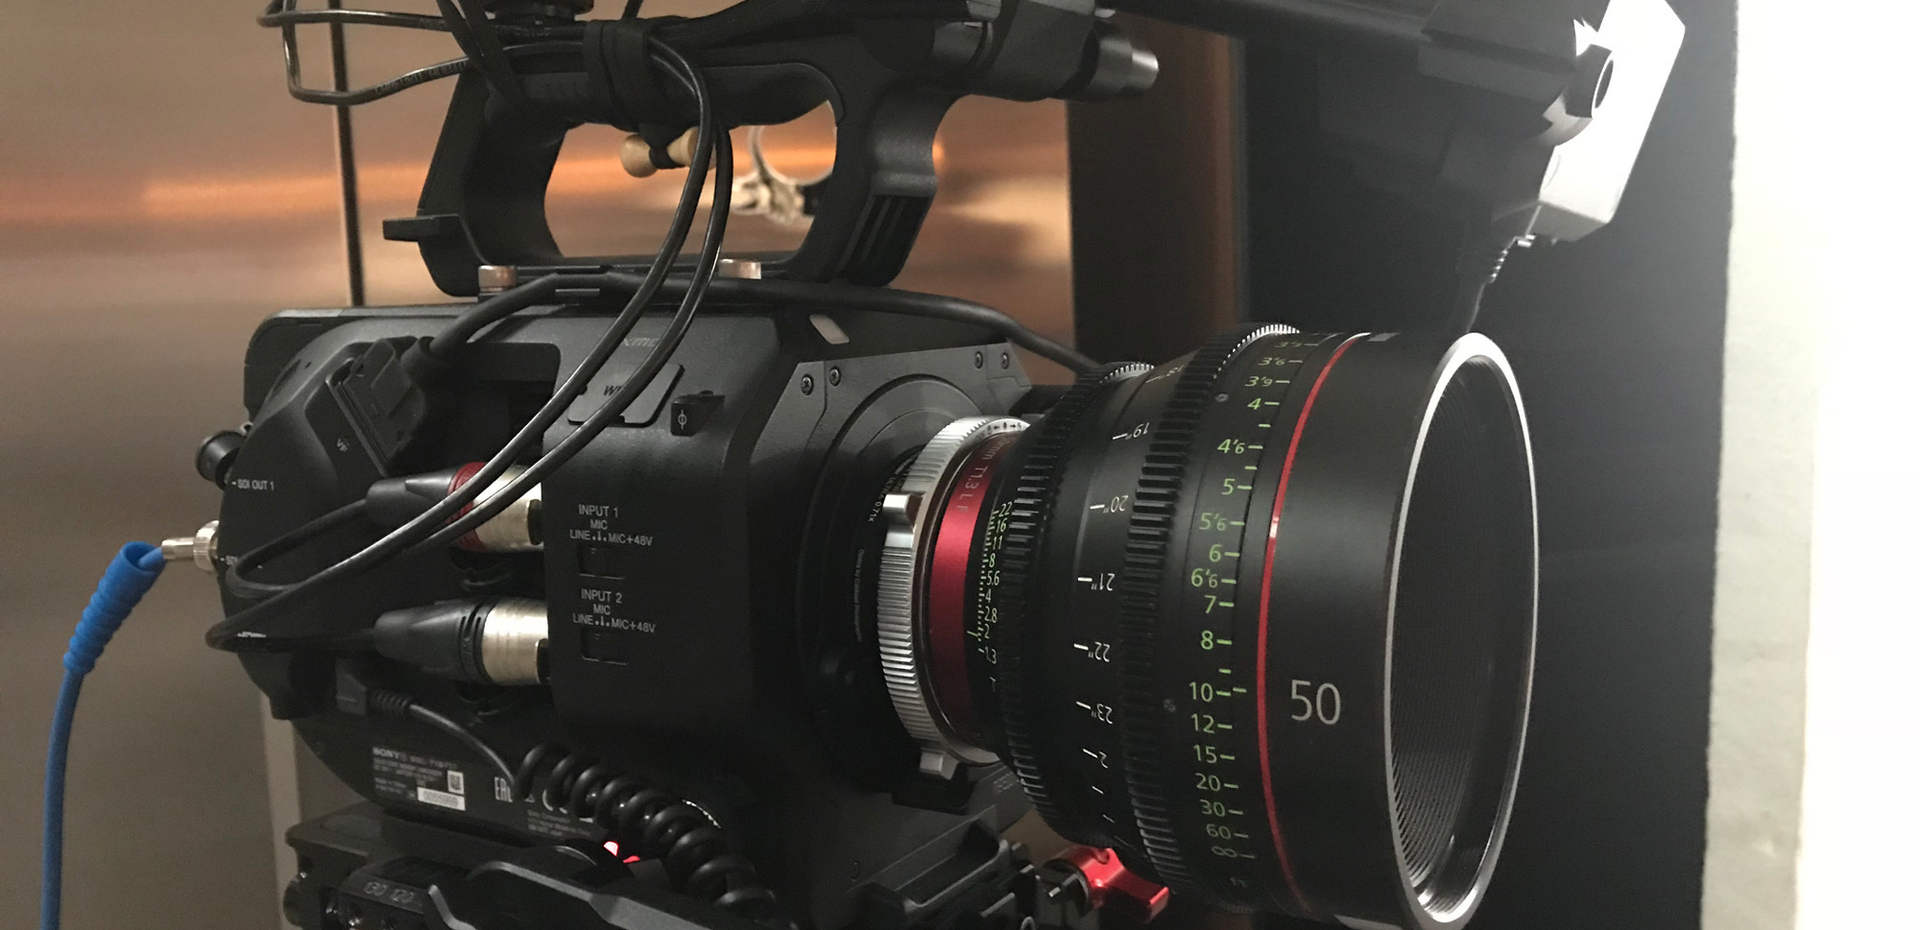 FS7 with Canon Primes - London Shoot wit